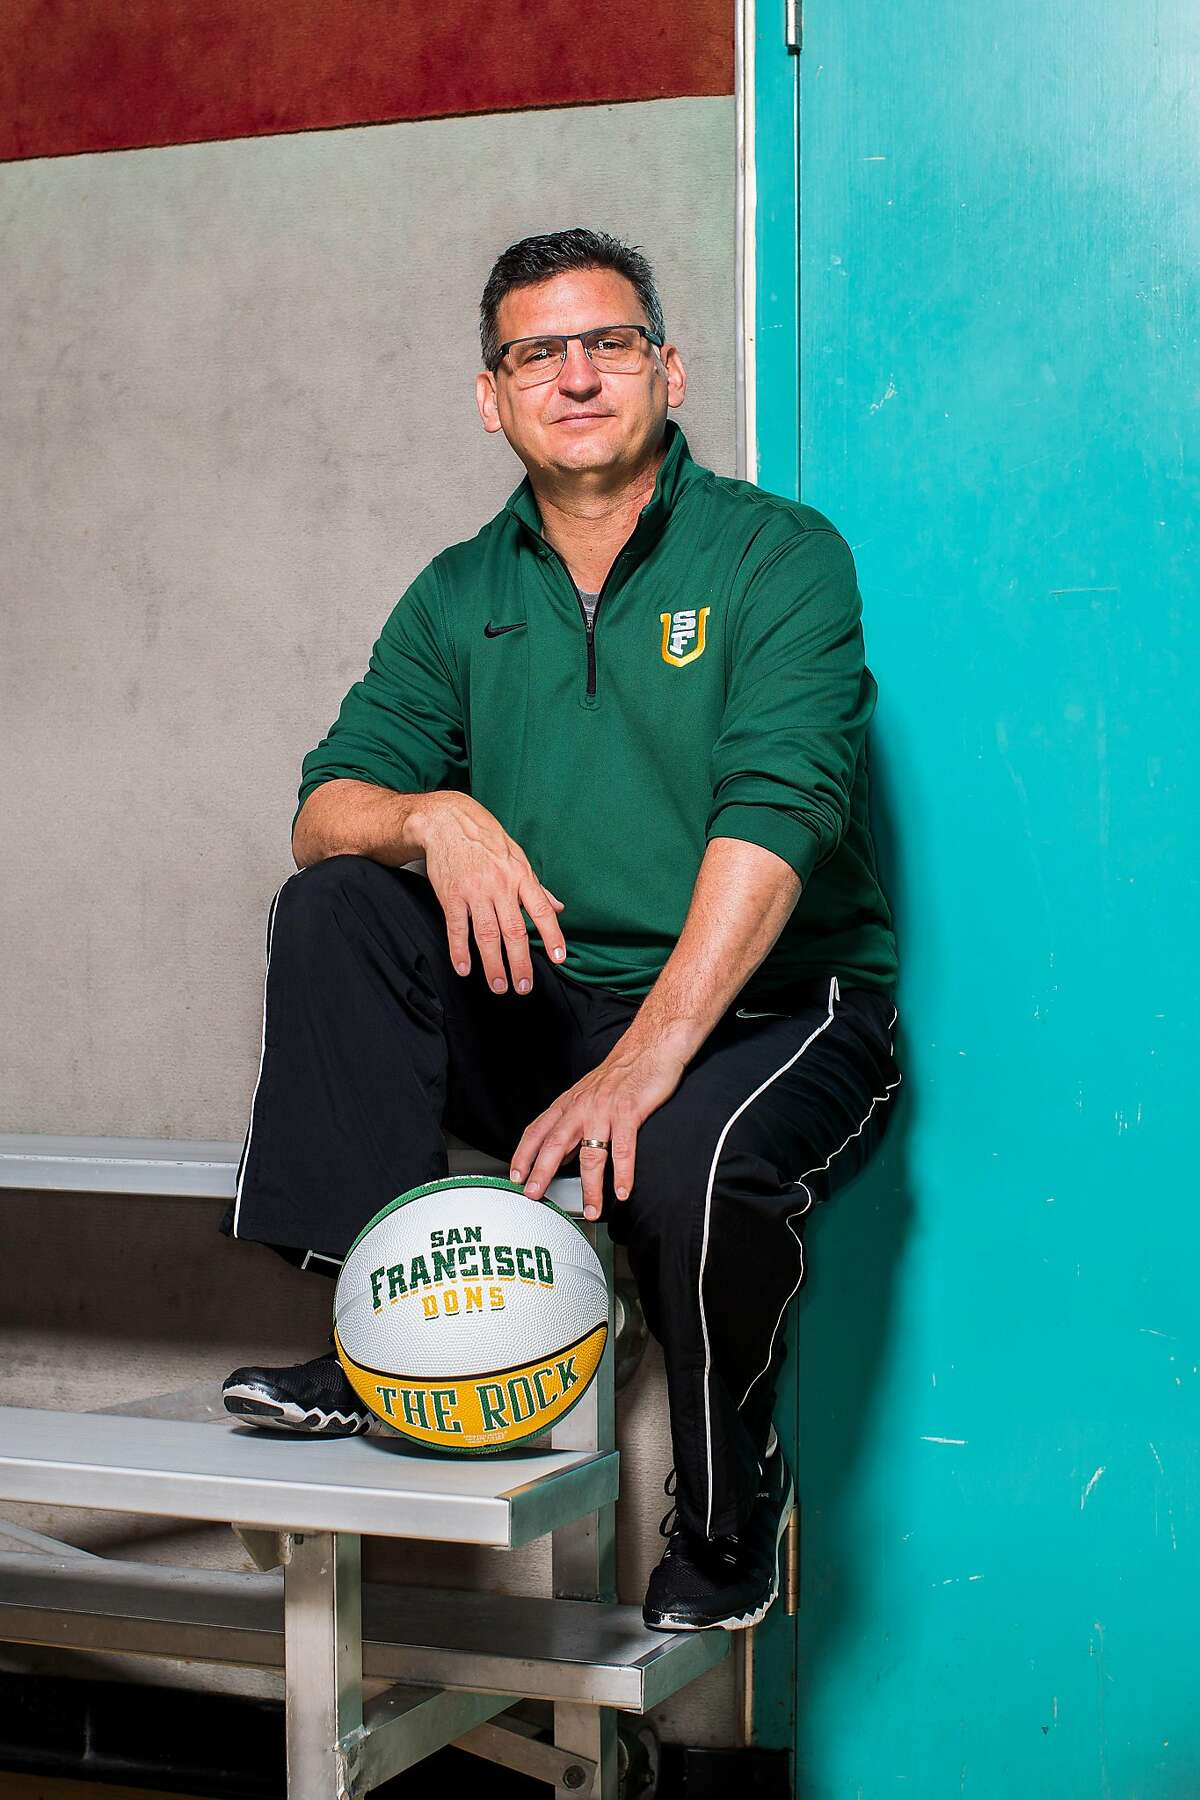 USF men's basketball coach Kyle Smith poses for a portrait after an informal workout at Swig Gym inside Koret Health and Recreation Center in San Francisco, Calif. on Tuesday, July 12, 2016.